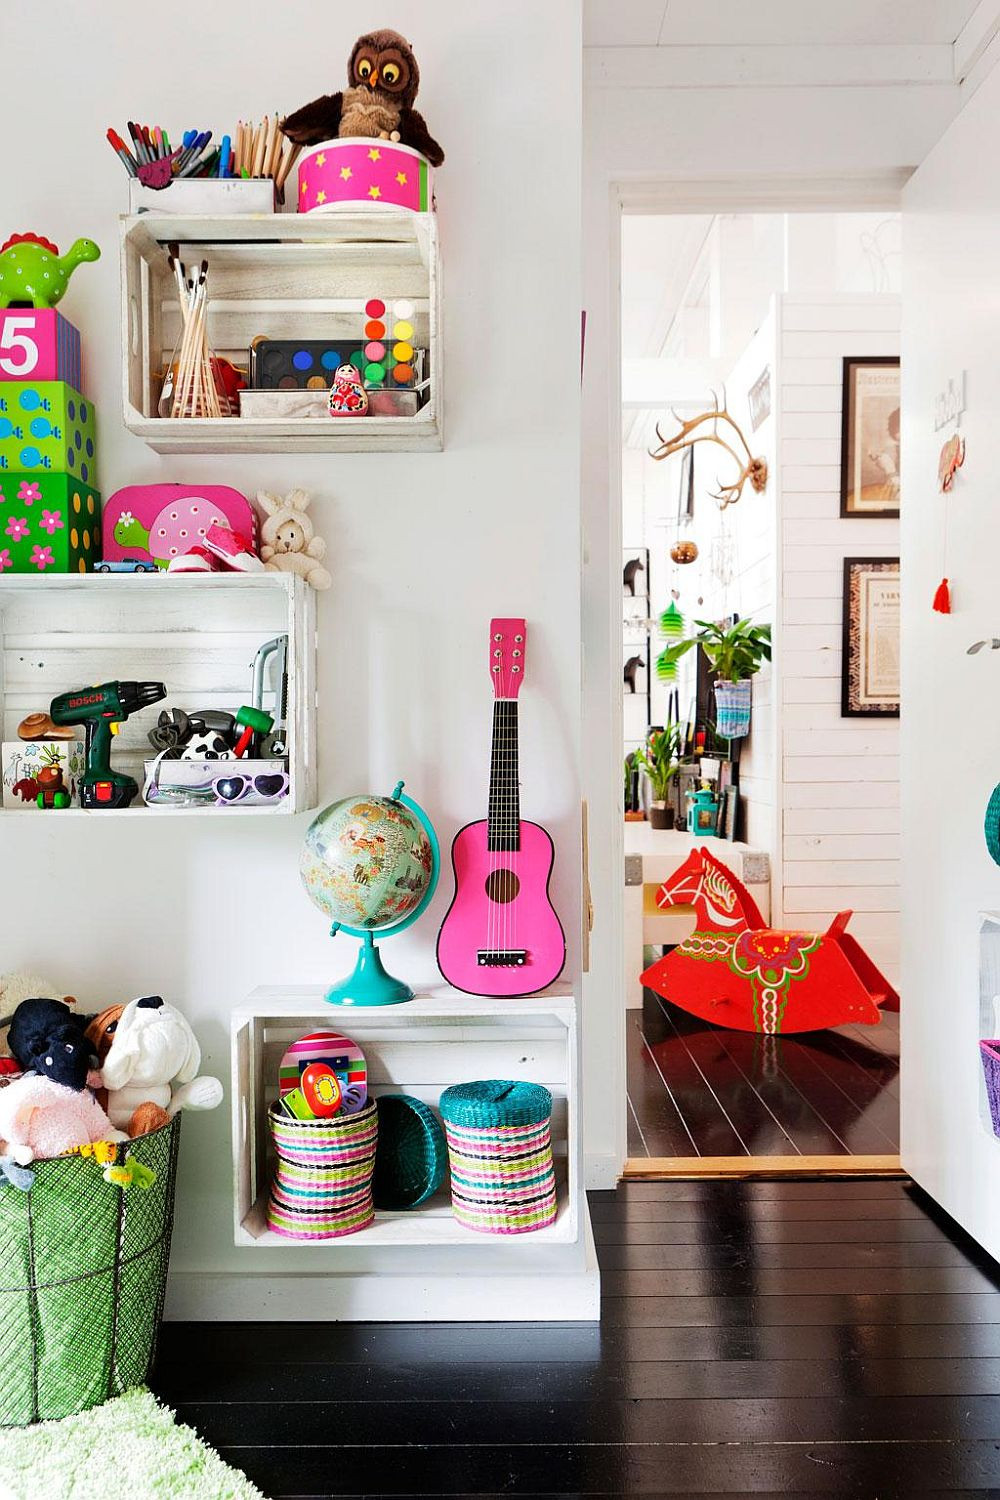 Best ideas about DIY Kids Room Ideas . Save or Pin 11 Space Saving DIY Kids' Room Storage Ideas that Help Now.